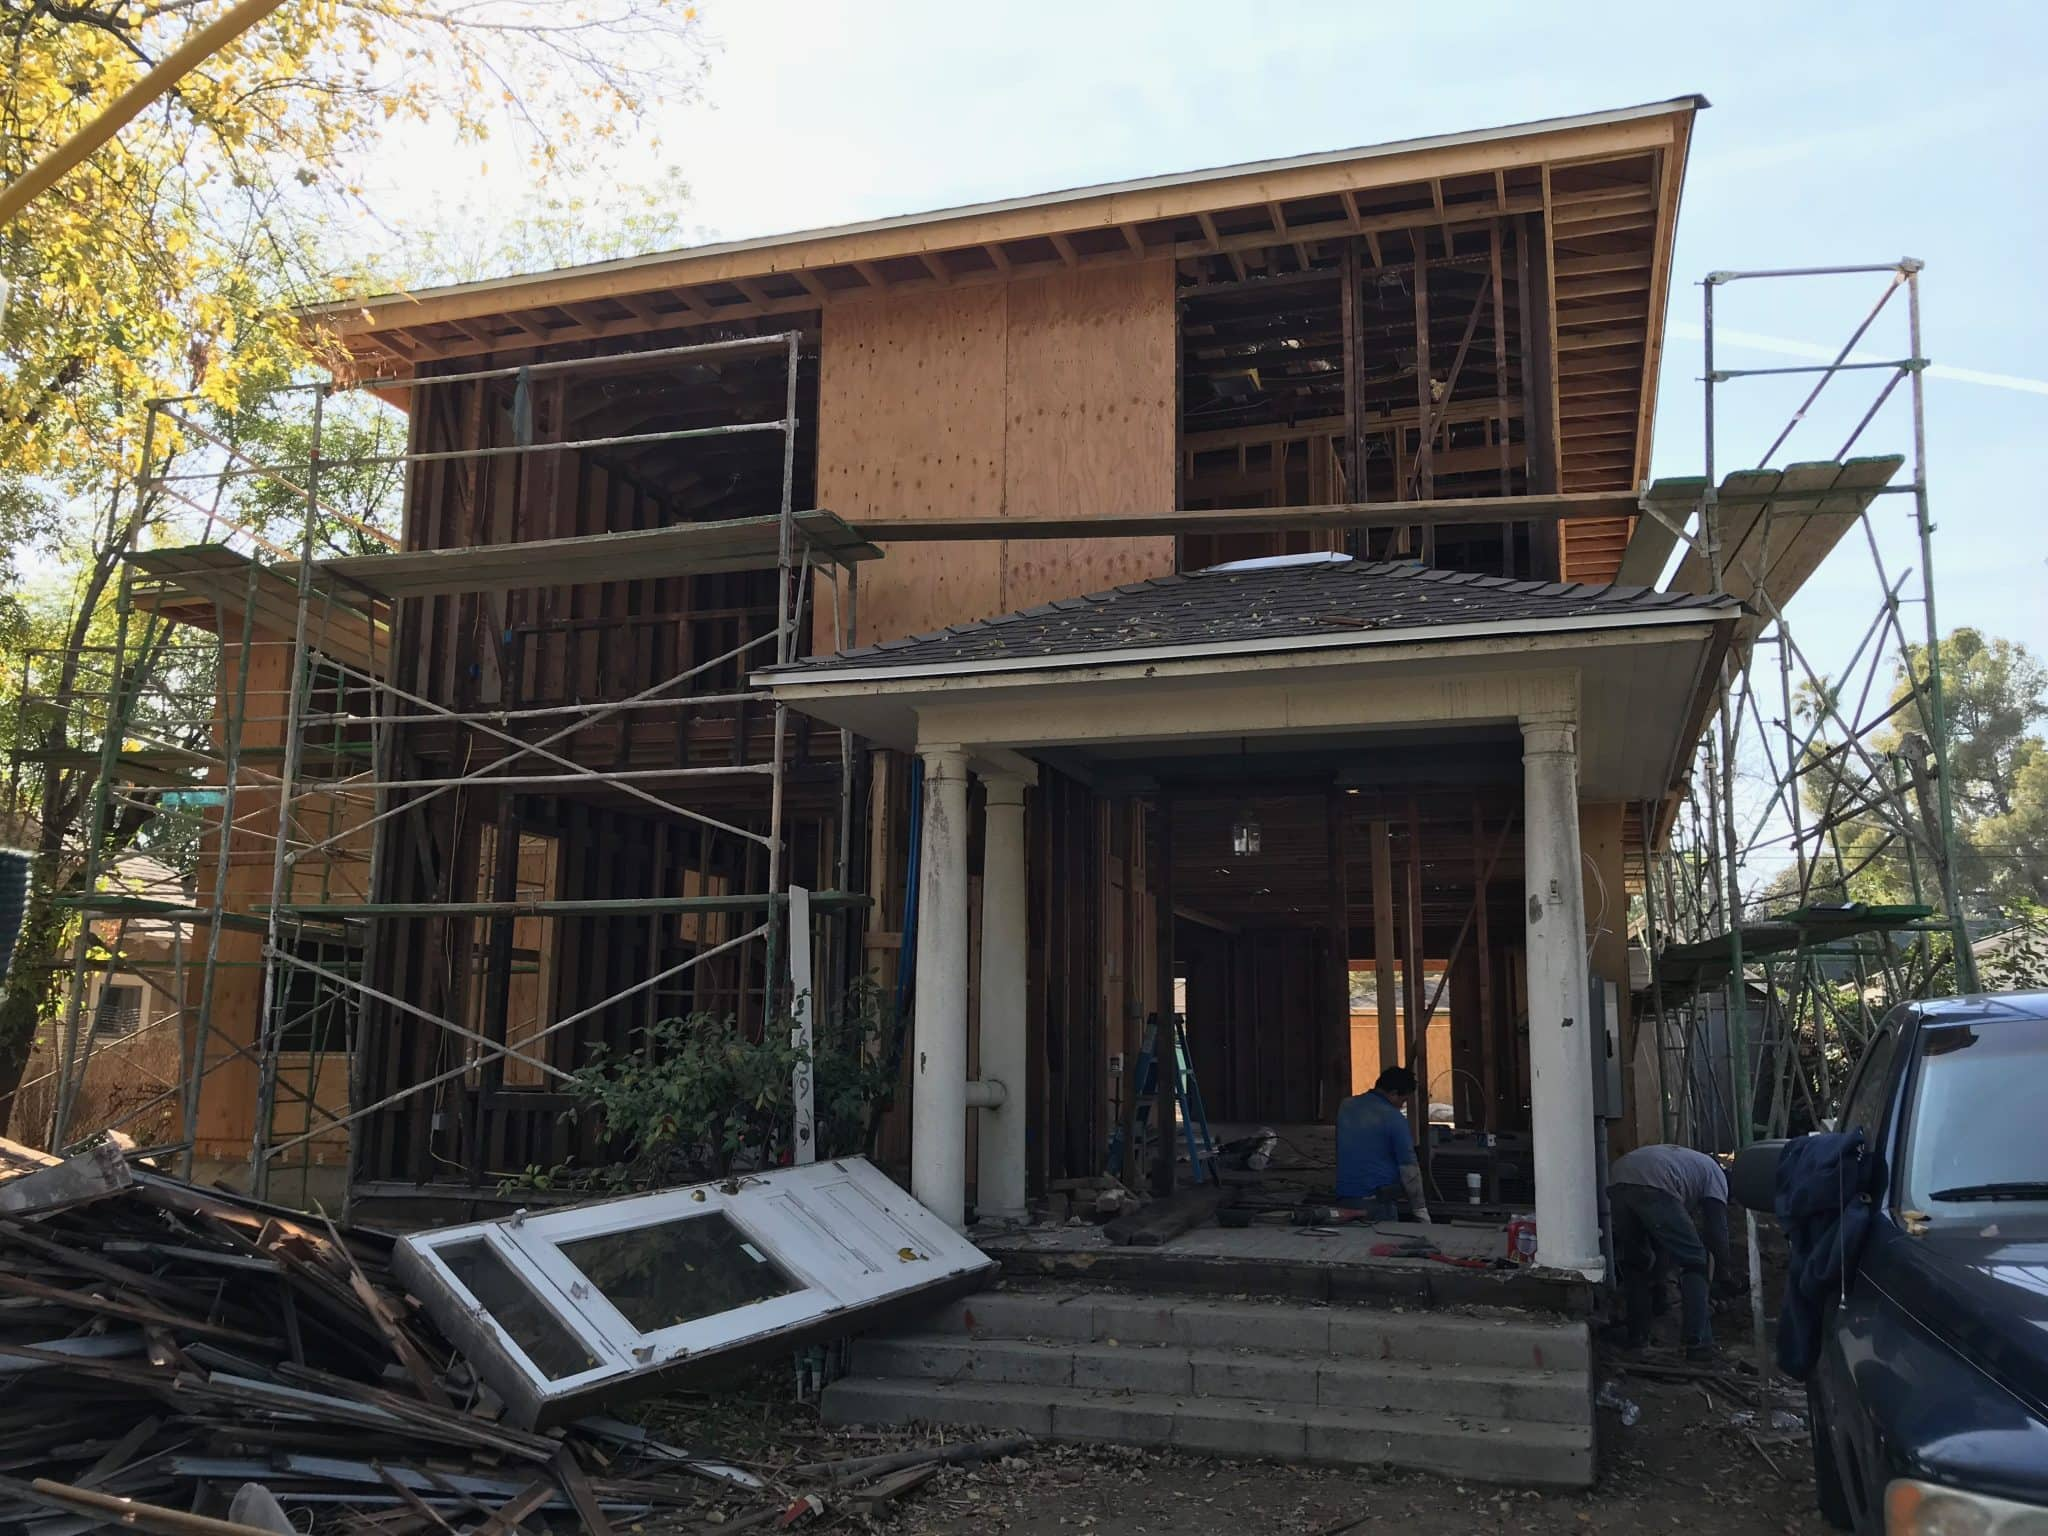 https://pasadenaheritage.org/wp-content/uploads/2019/11/Pasadena-Heritage-Continued-to-Work-to-Control-Mansionization.jpg